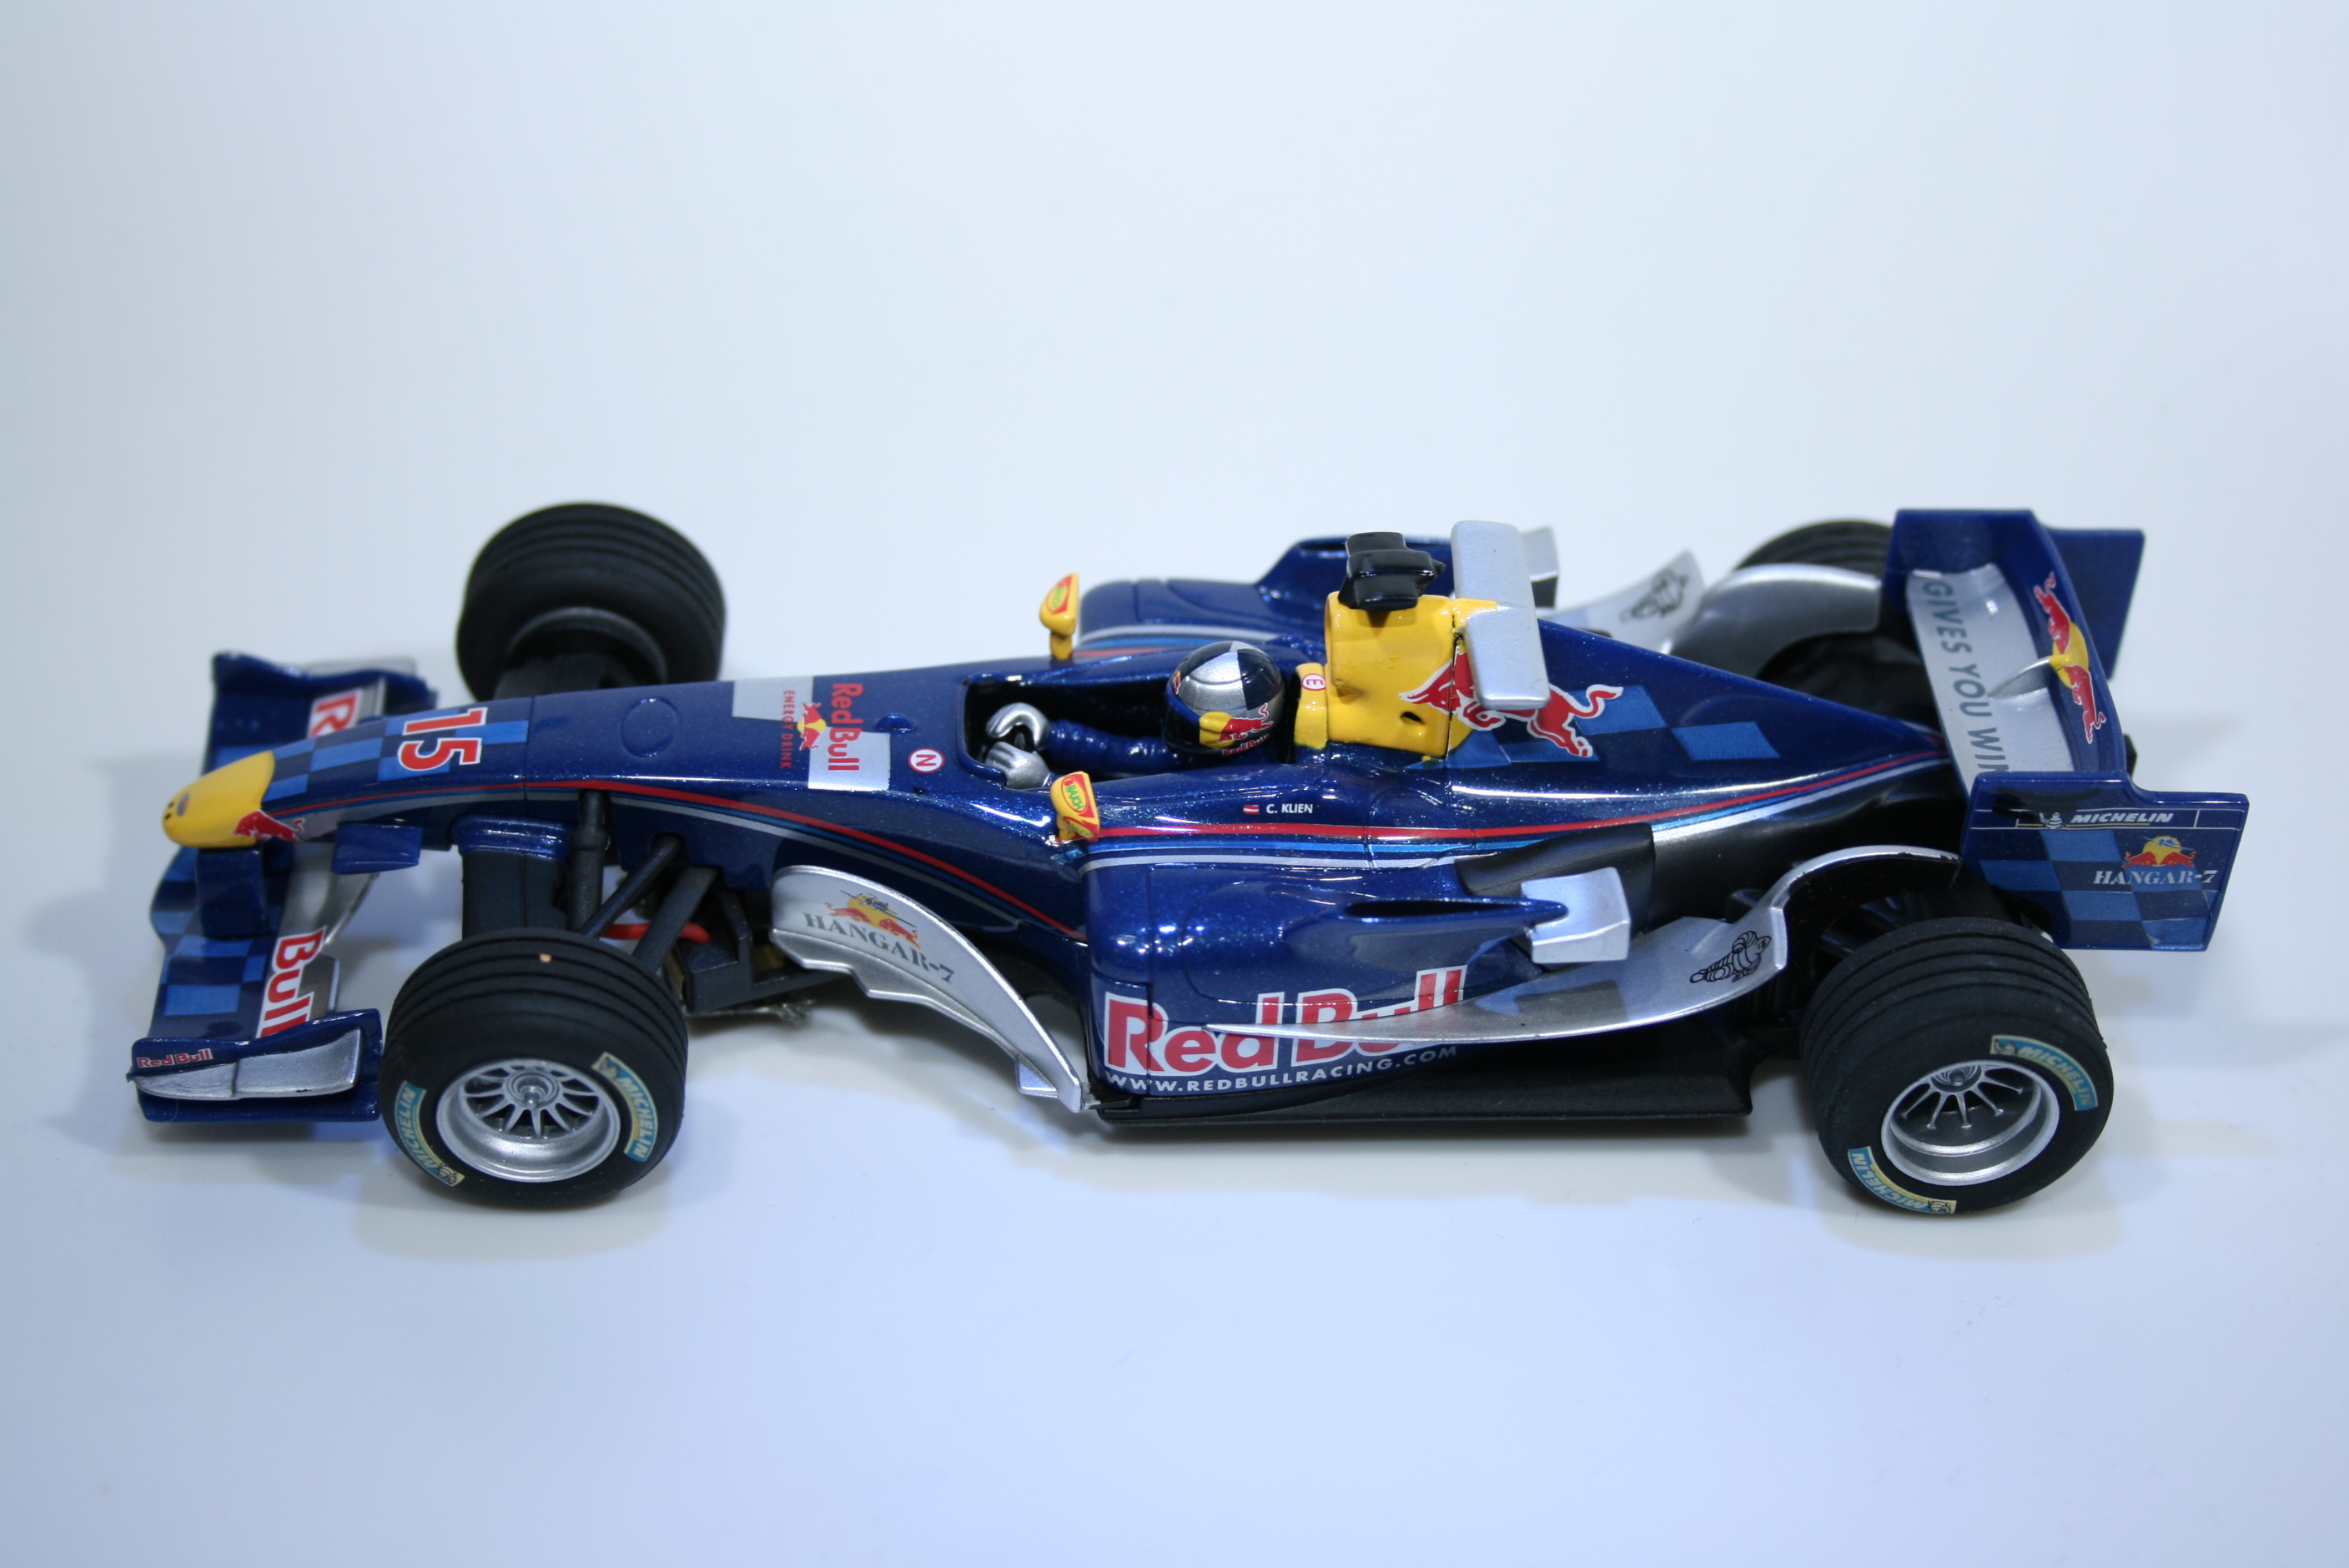 346 Red Bull RB2 2006 C Klien Carrera 27122 2006 Boxed